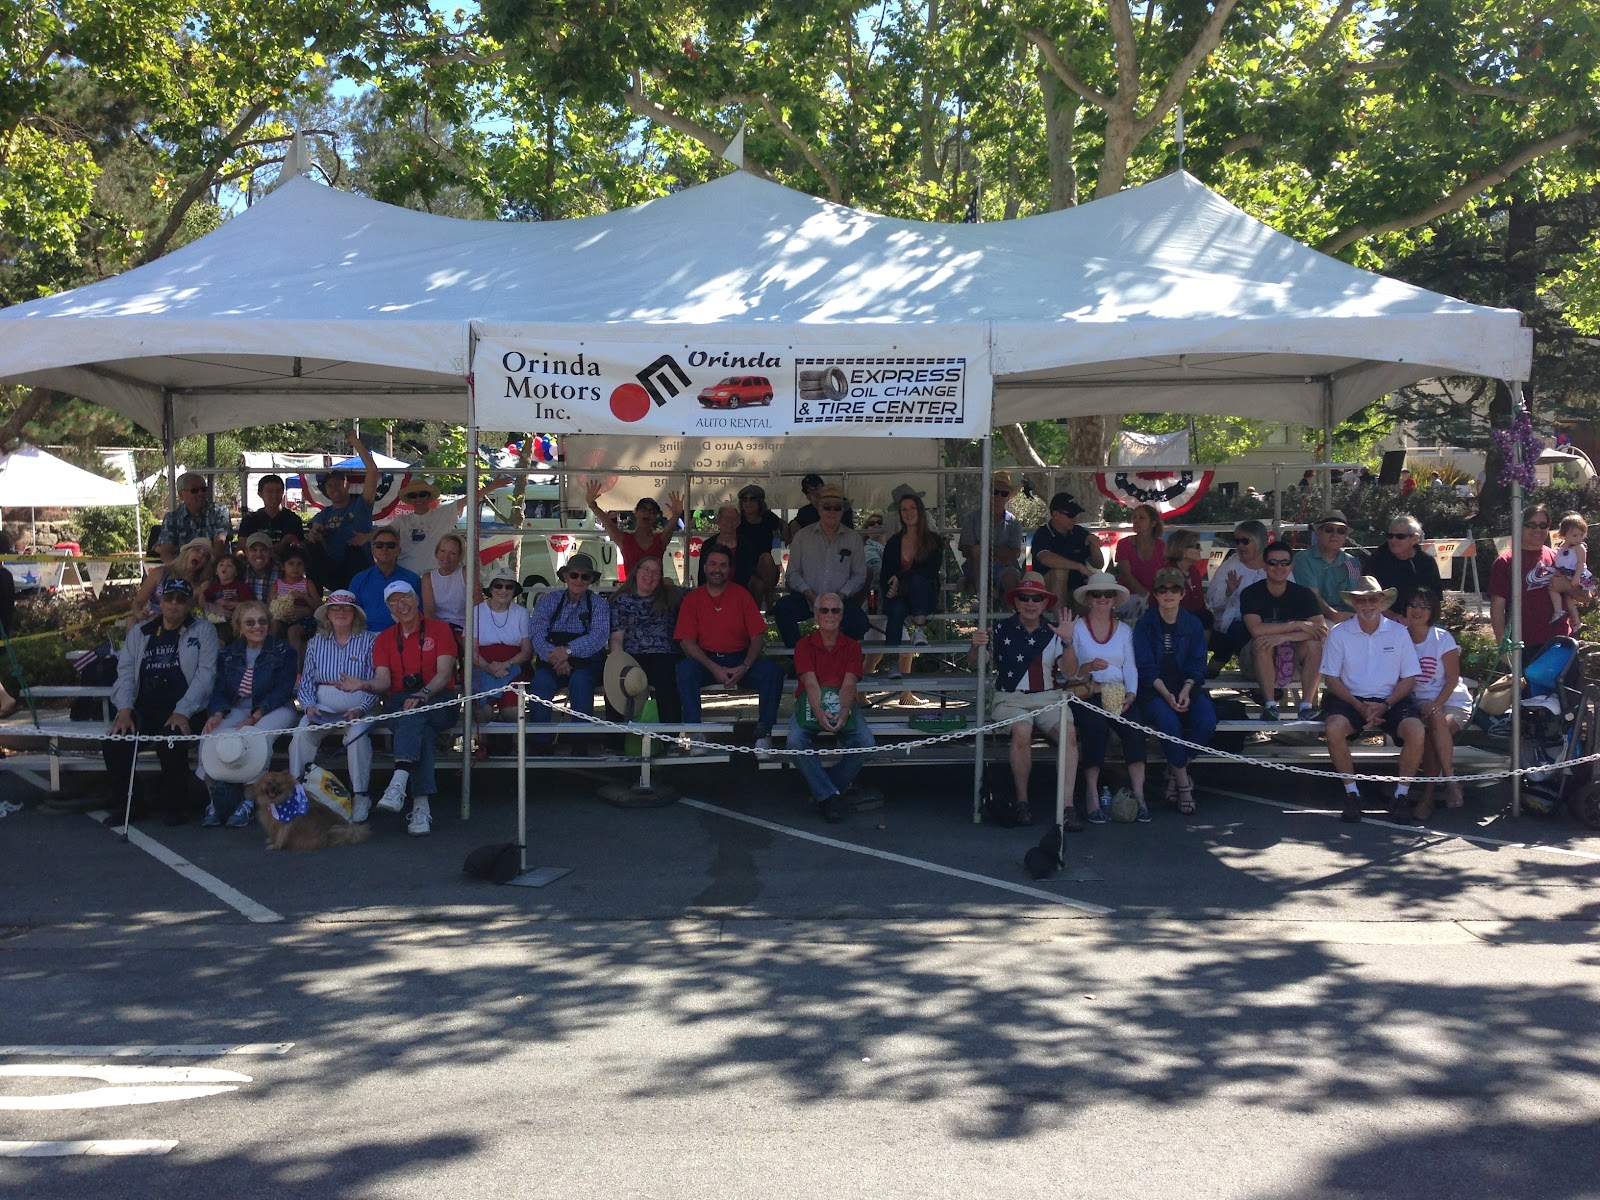 Join Orinda Motors for the July 4th Parade!